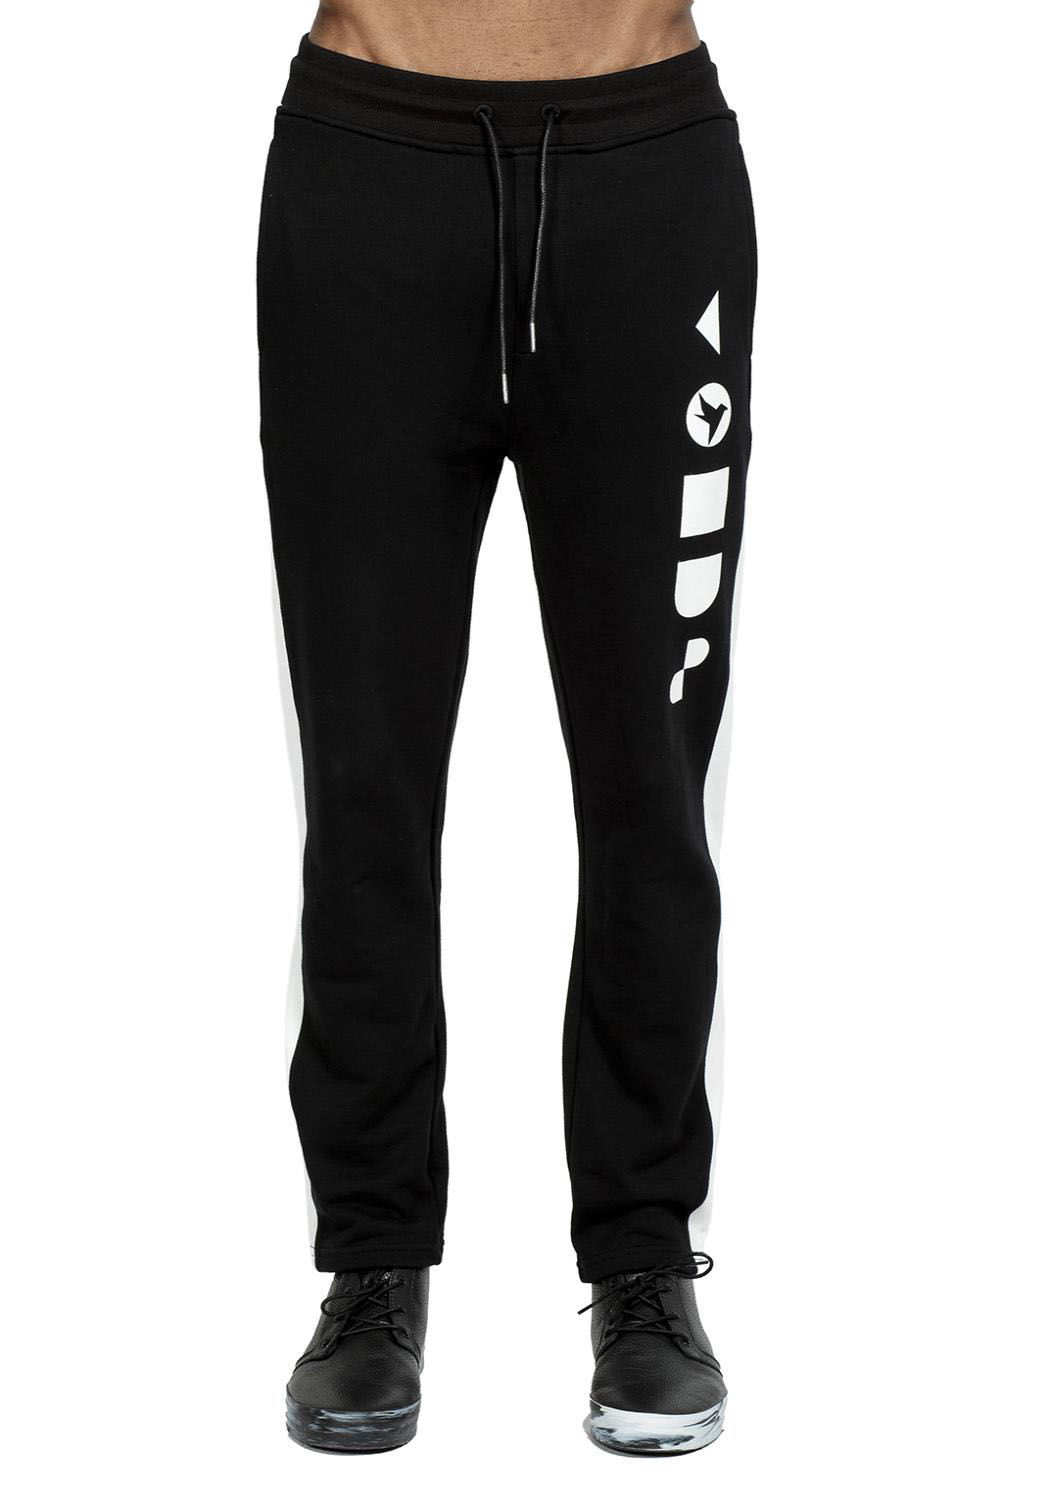 Konus Hanks Sweatpants Men Clothing